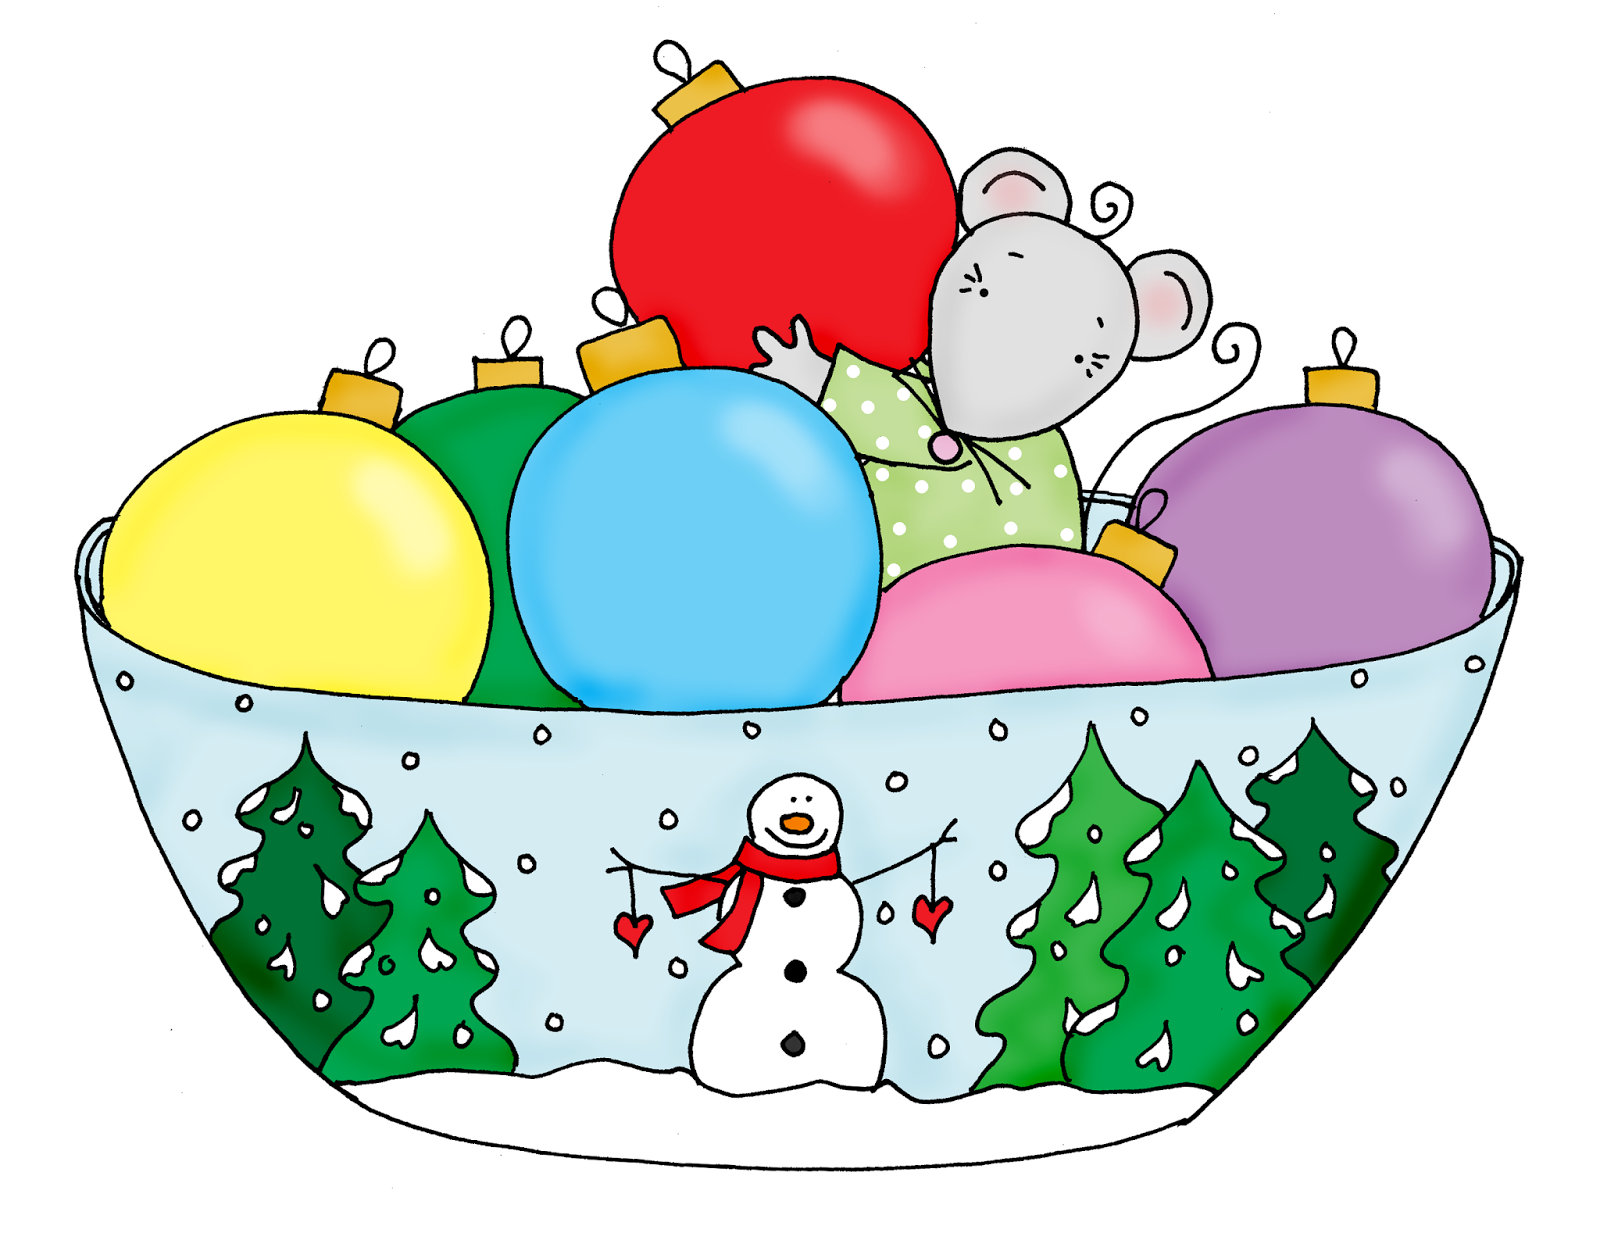 Christmas Cheer In A Bowl